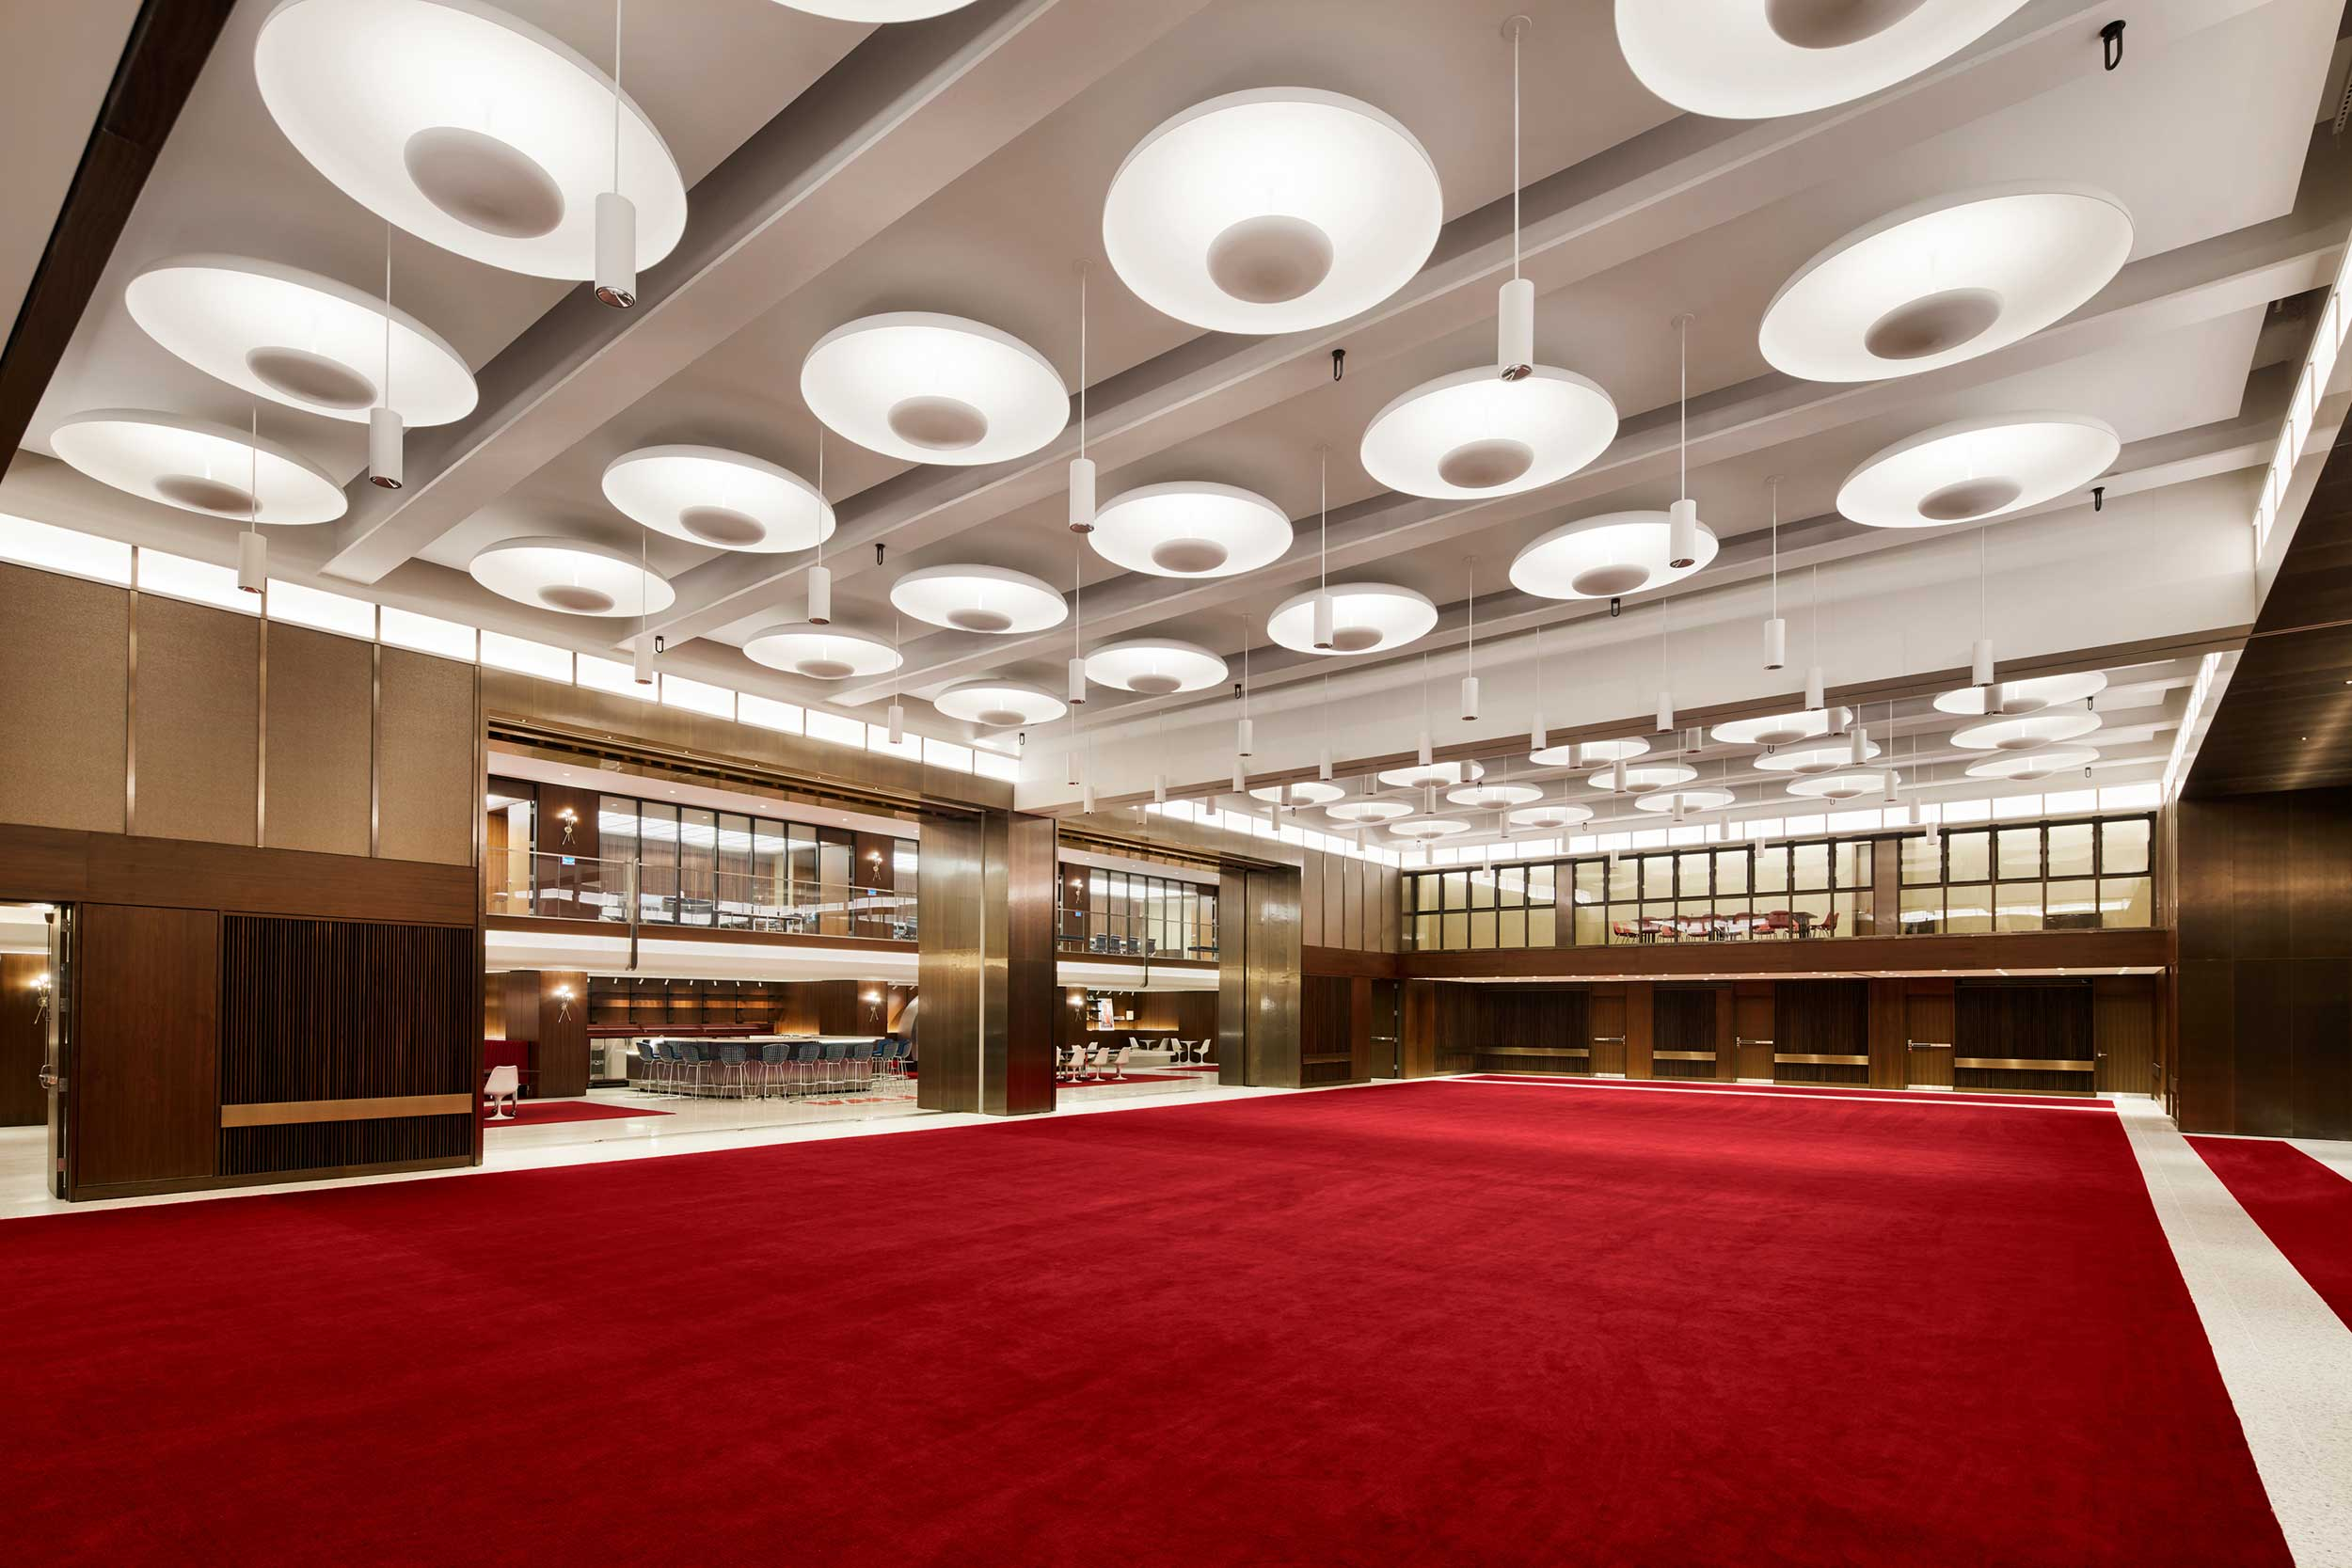 The Constellation Ballroom at the TWA Hotel